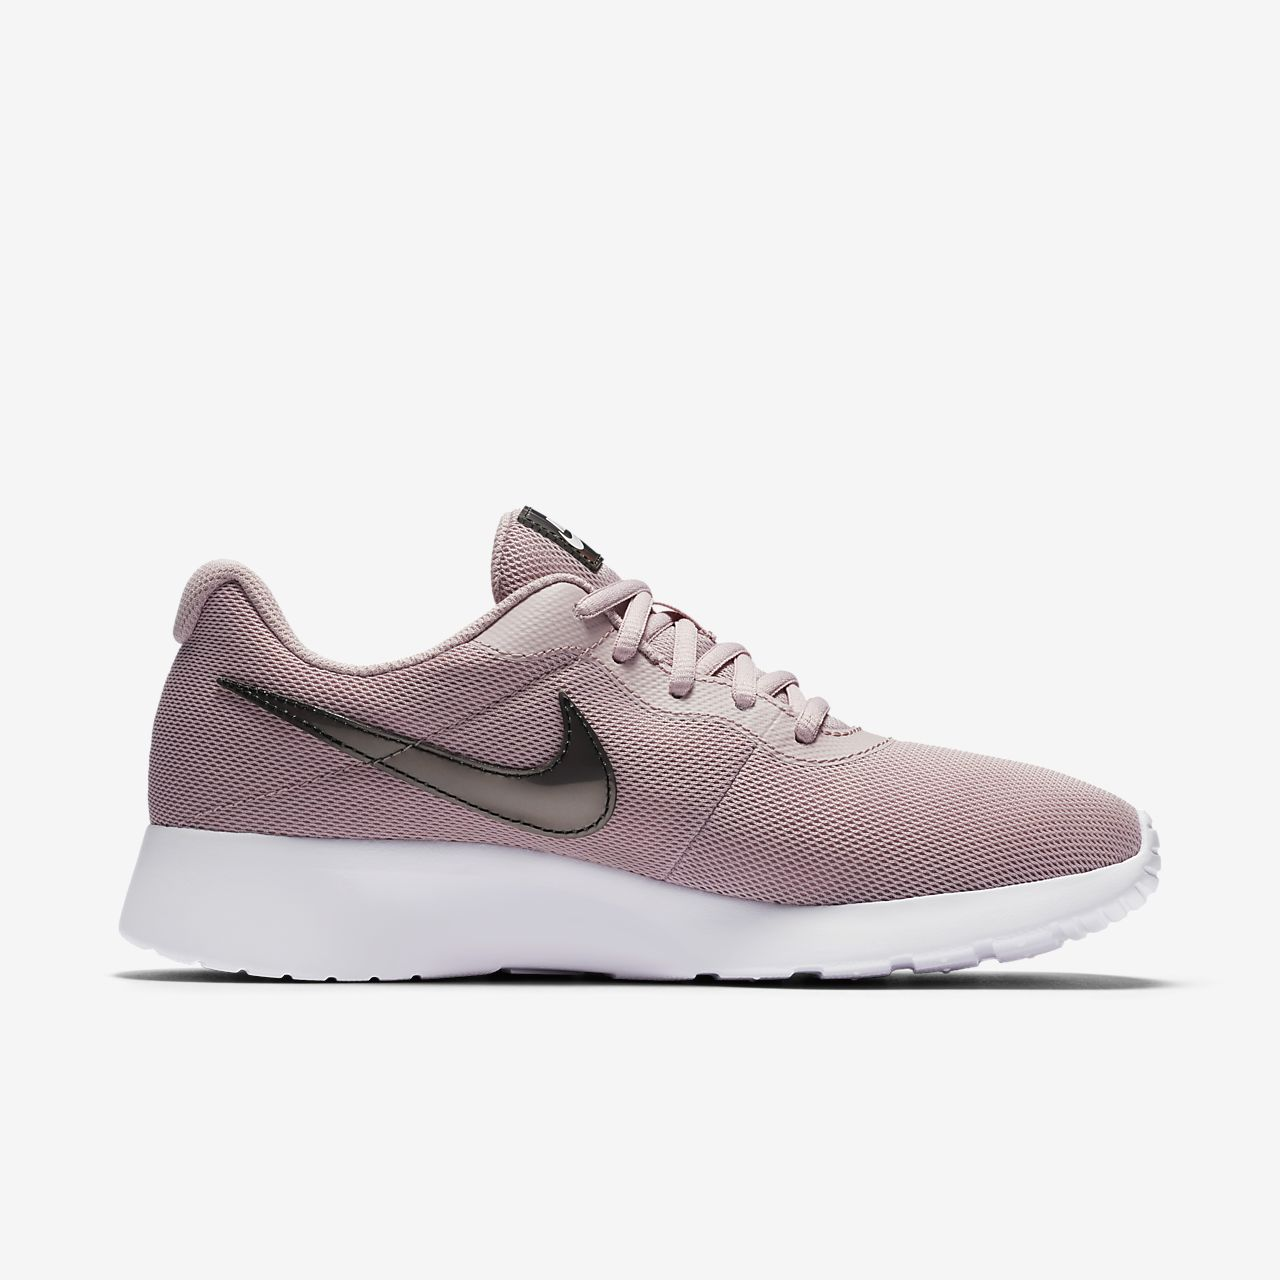 0effeaa8e008b3 Low Resolution Nike Tanjun Women s Shoe Nike Tanjun Women s Shoe